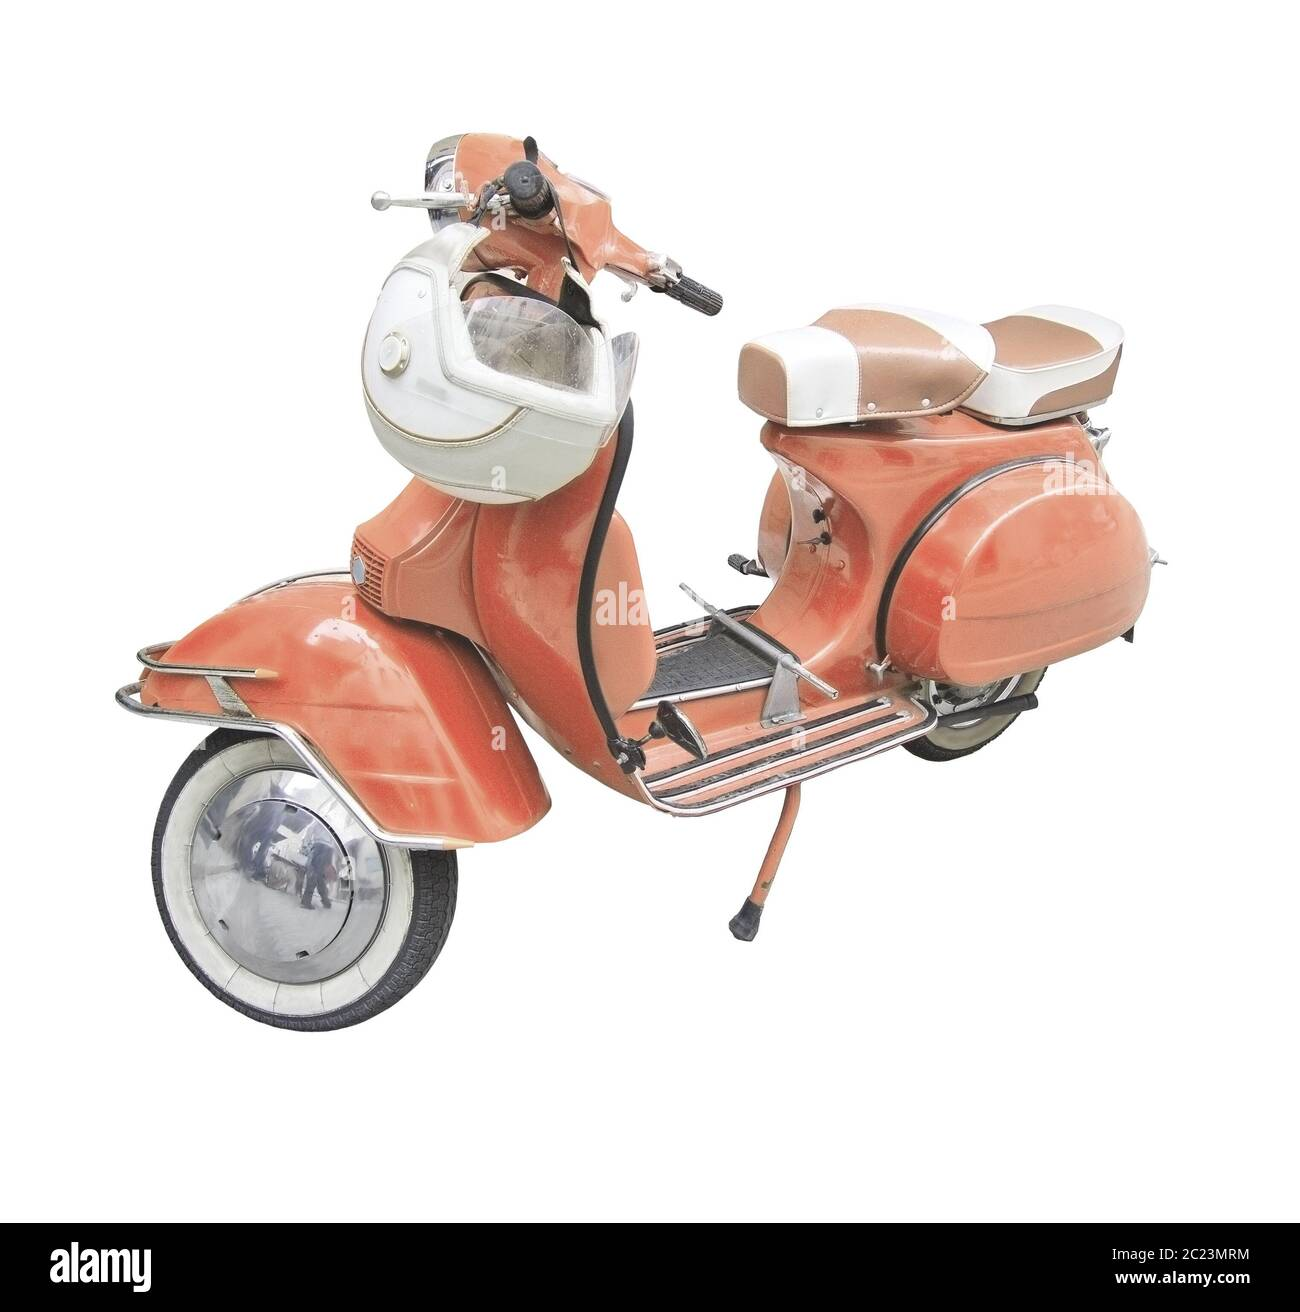 Vintage Scooter With Helmet Toned In Shade Of Living Coral Stock Photo Alamy